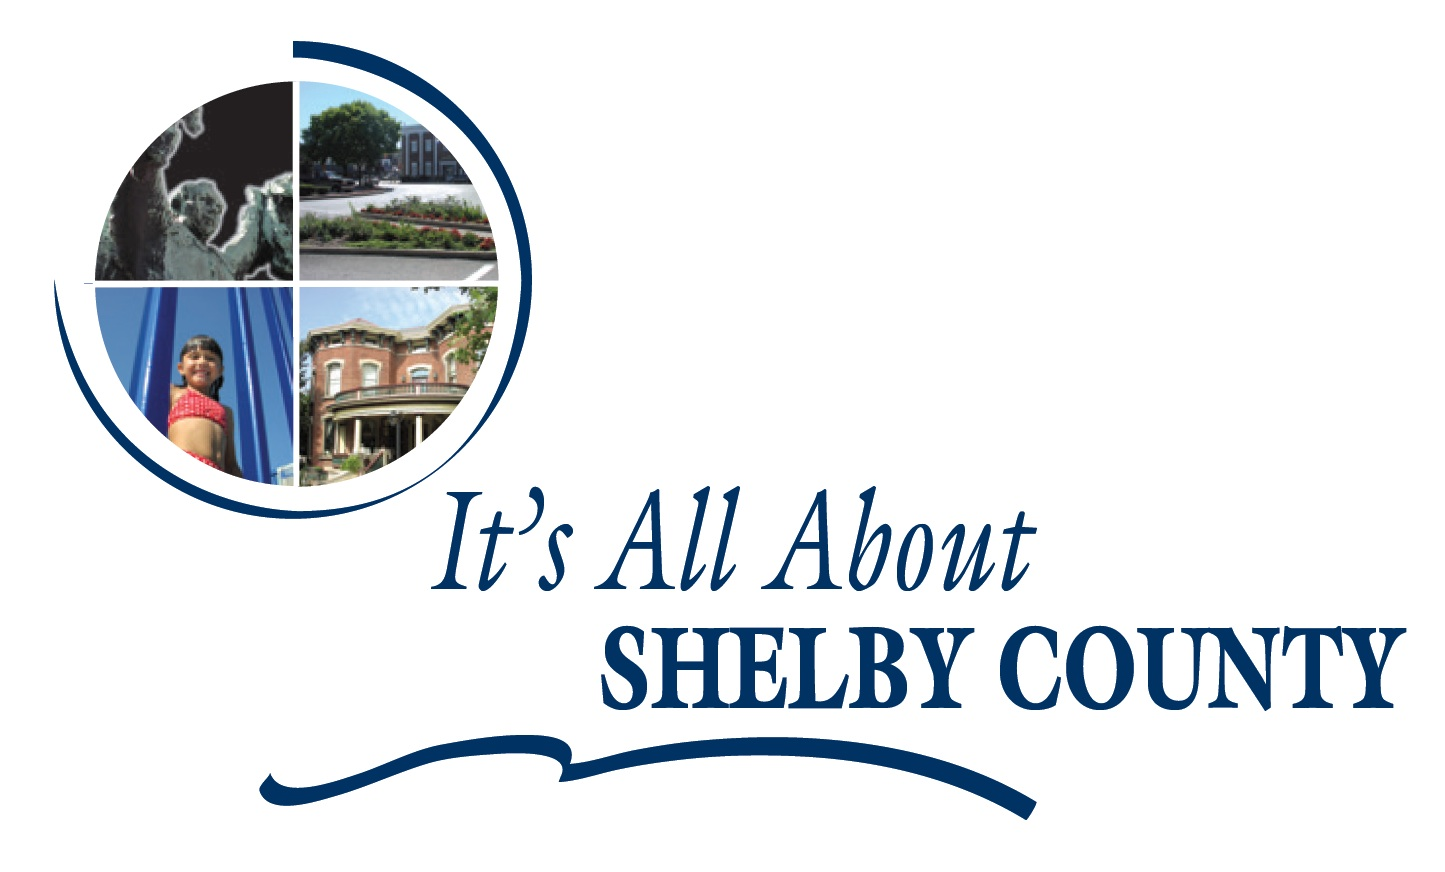 It's All About Shelby County